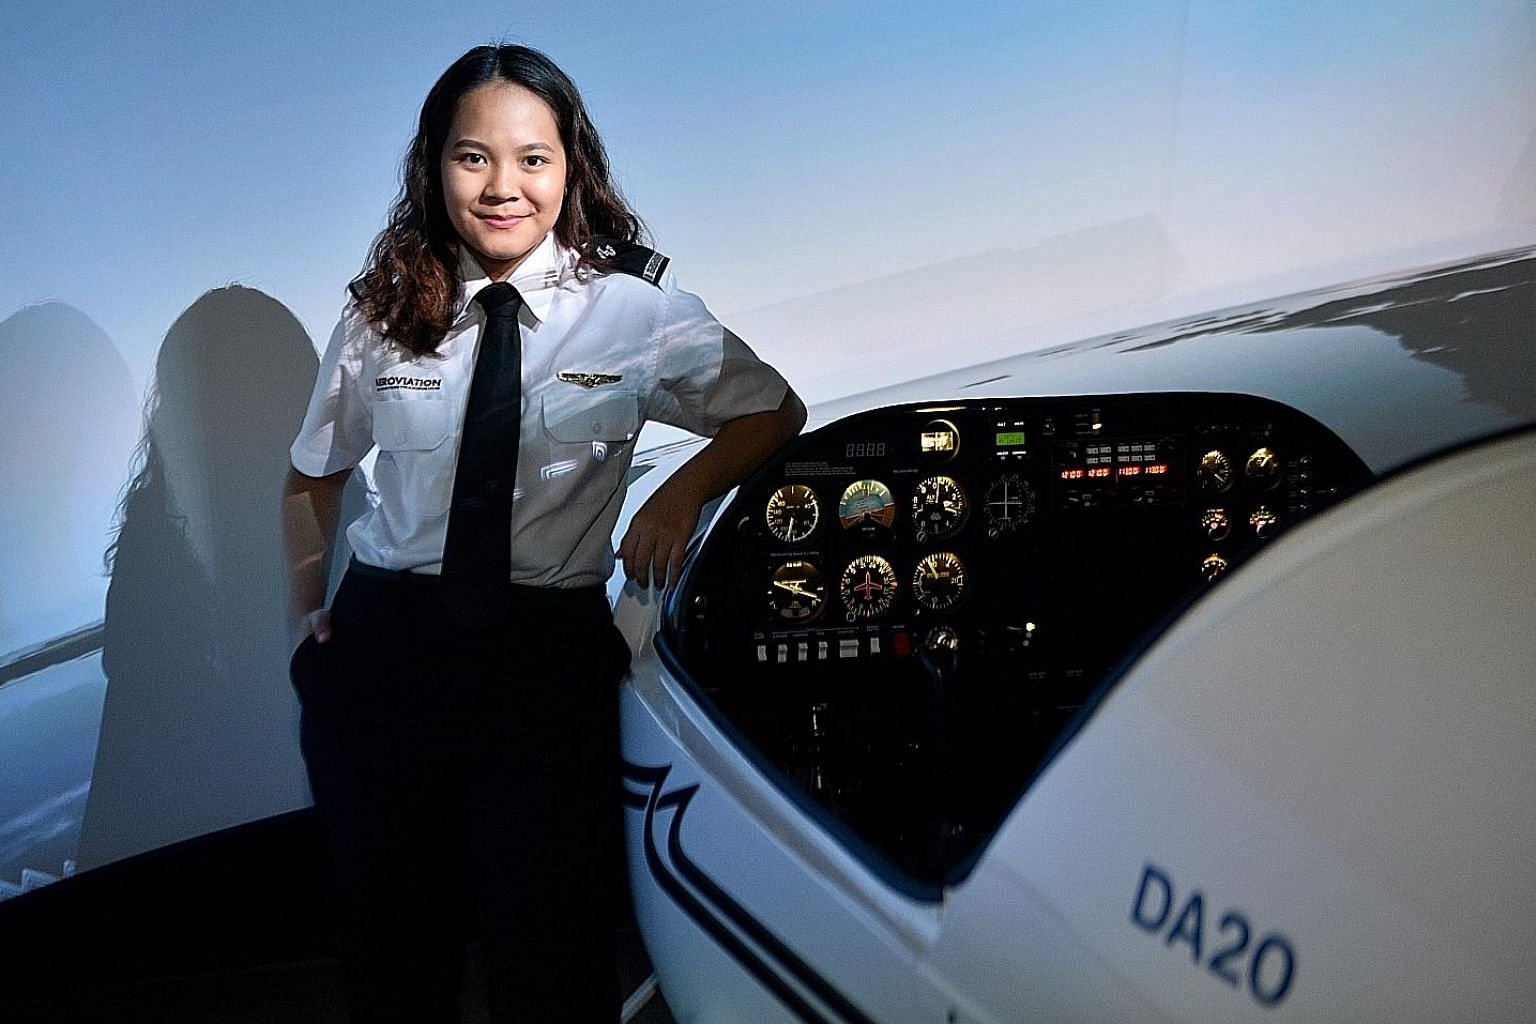 Inspired by a newspaper article about Singapore's first local Malay woman to become a commercial pilot, Haazeqah Nur Atikah Abdullah enrolled in private aviation school Aeroviation and spent three to four hours almost every weekday for a few months l